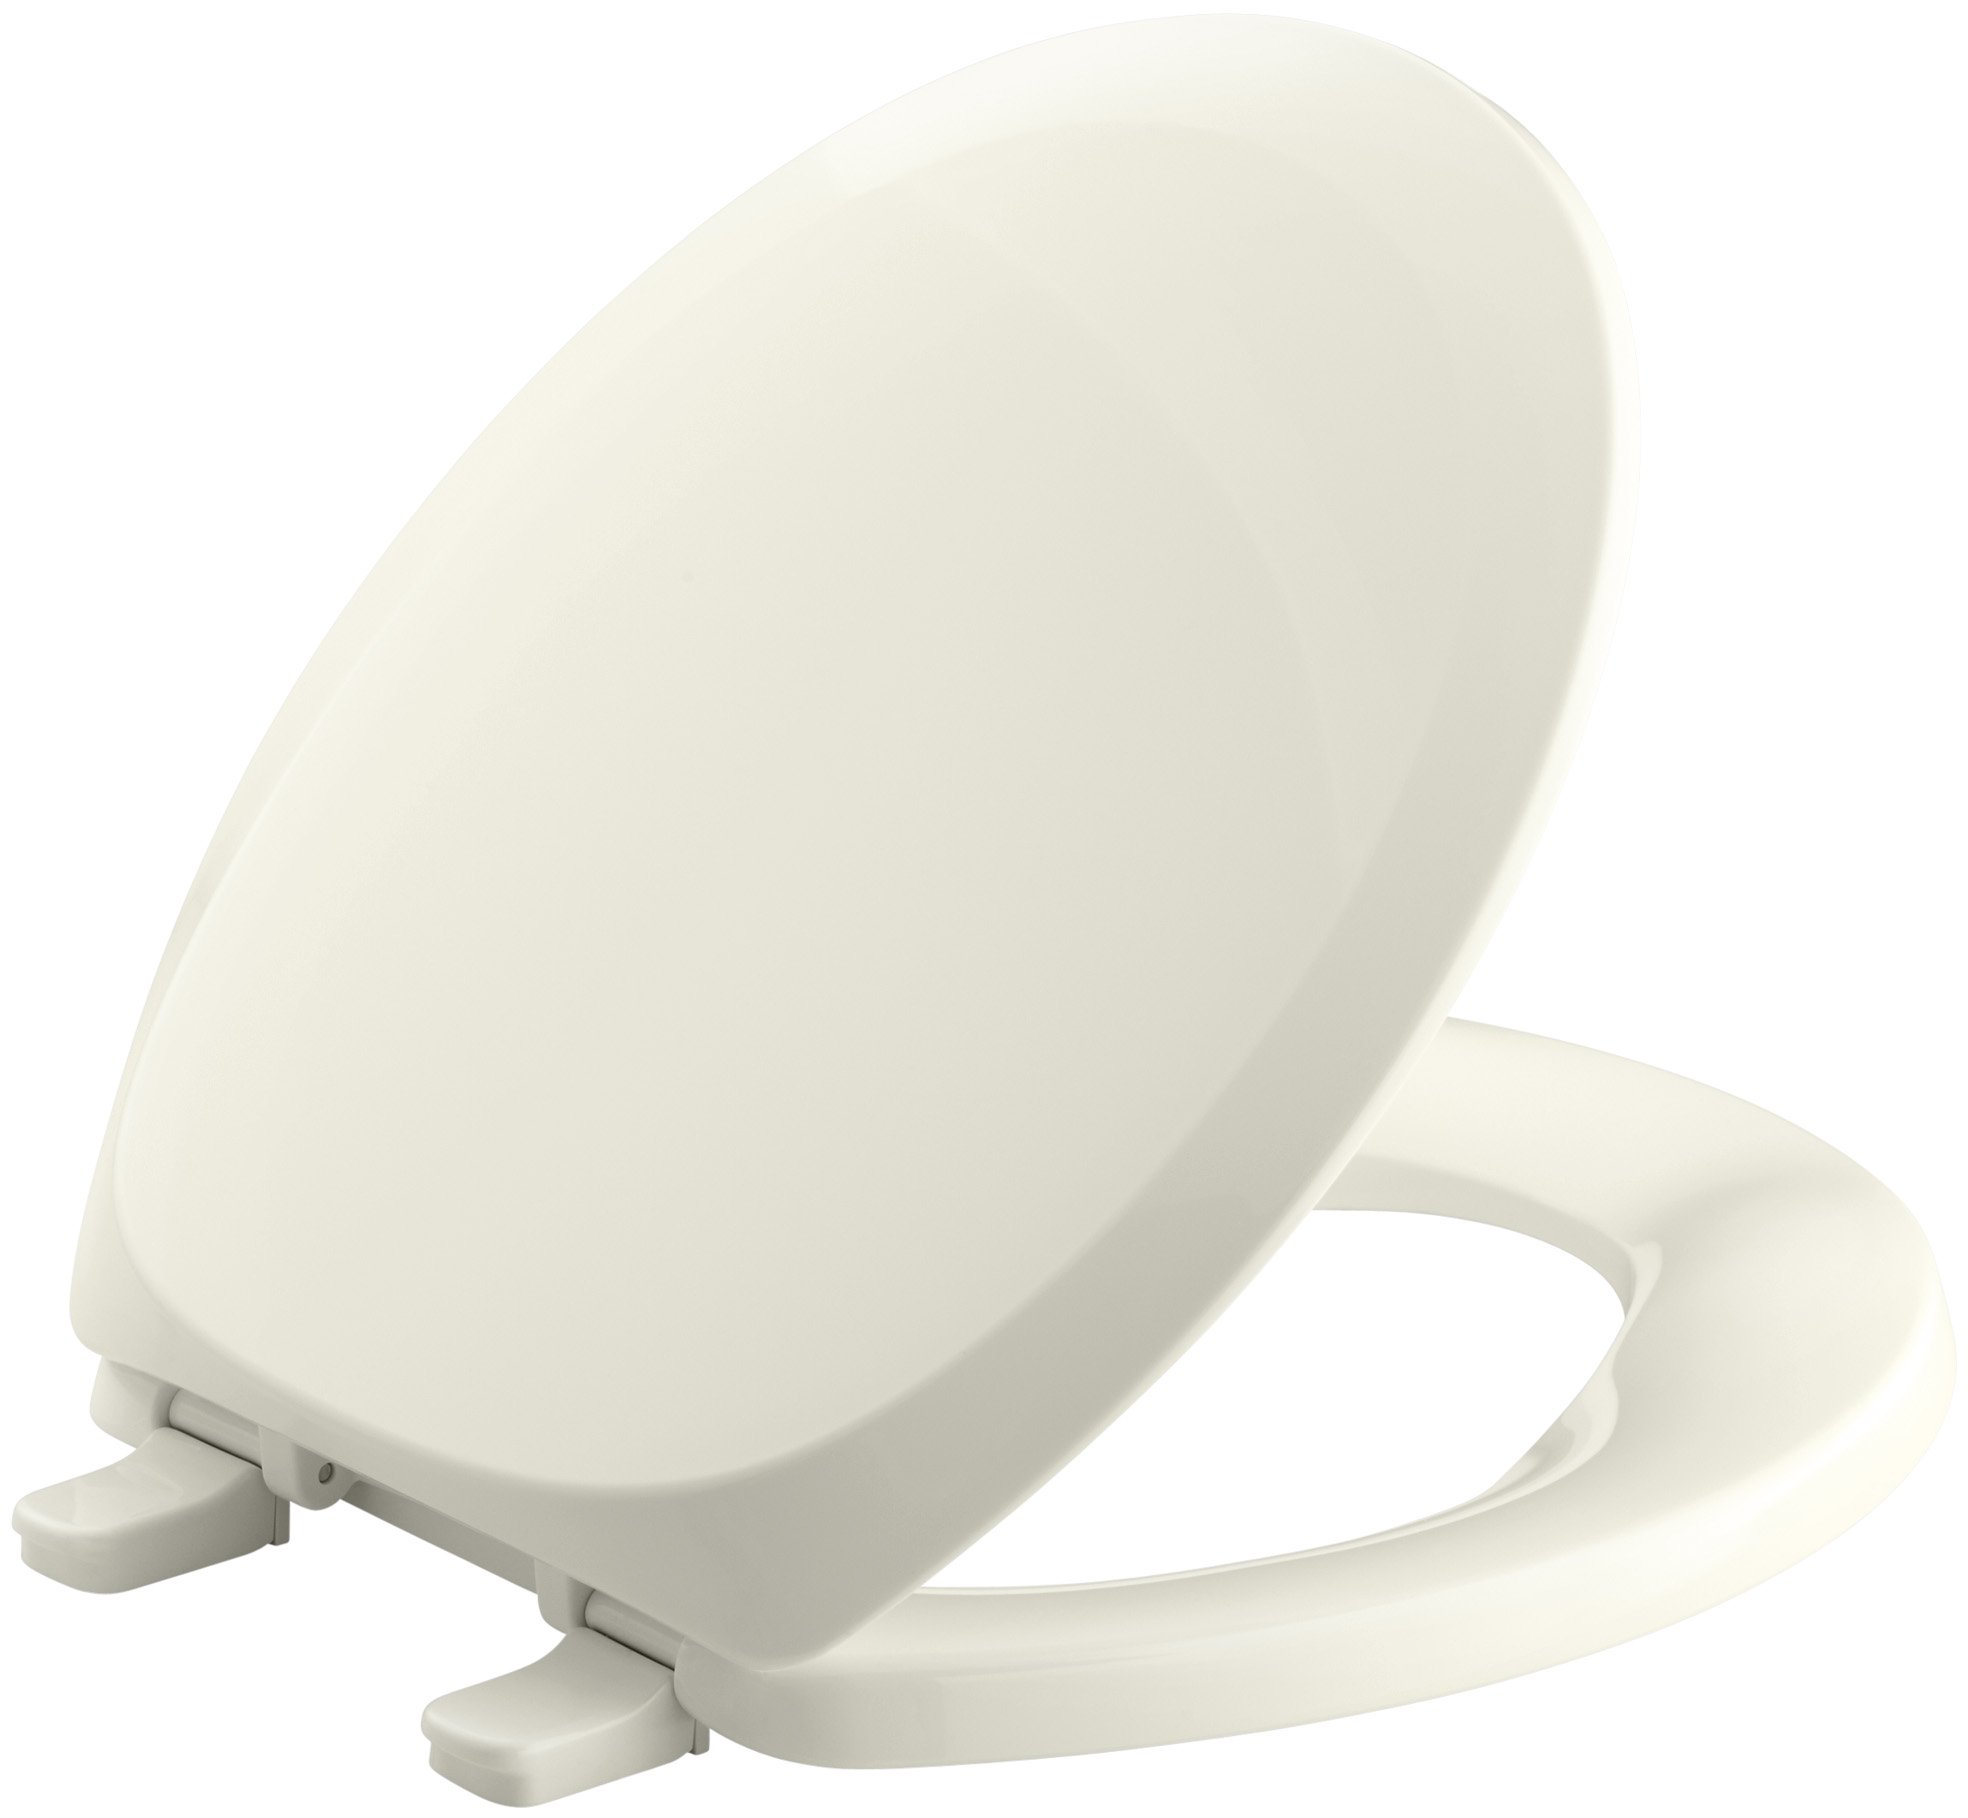 KOHLER K-4663-96 French Curve with Quick-Release Hinges Round-front Toilet Seat, Biscuit by Kohler